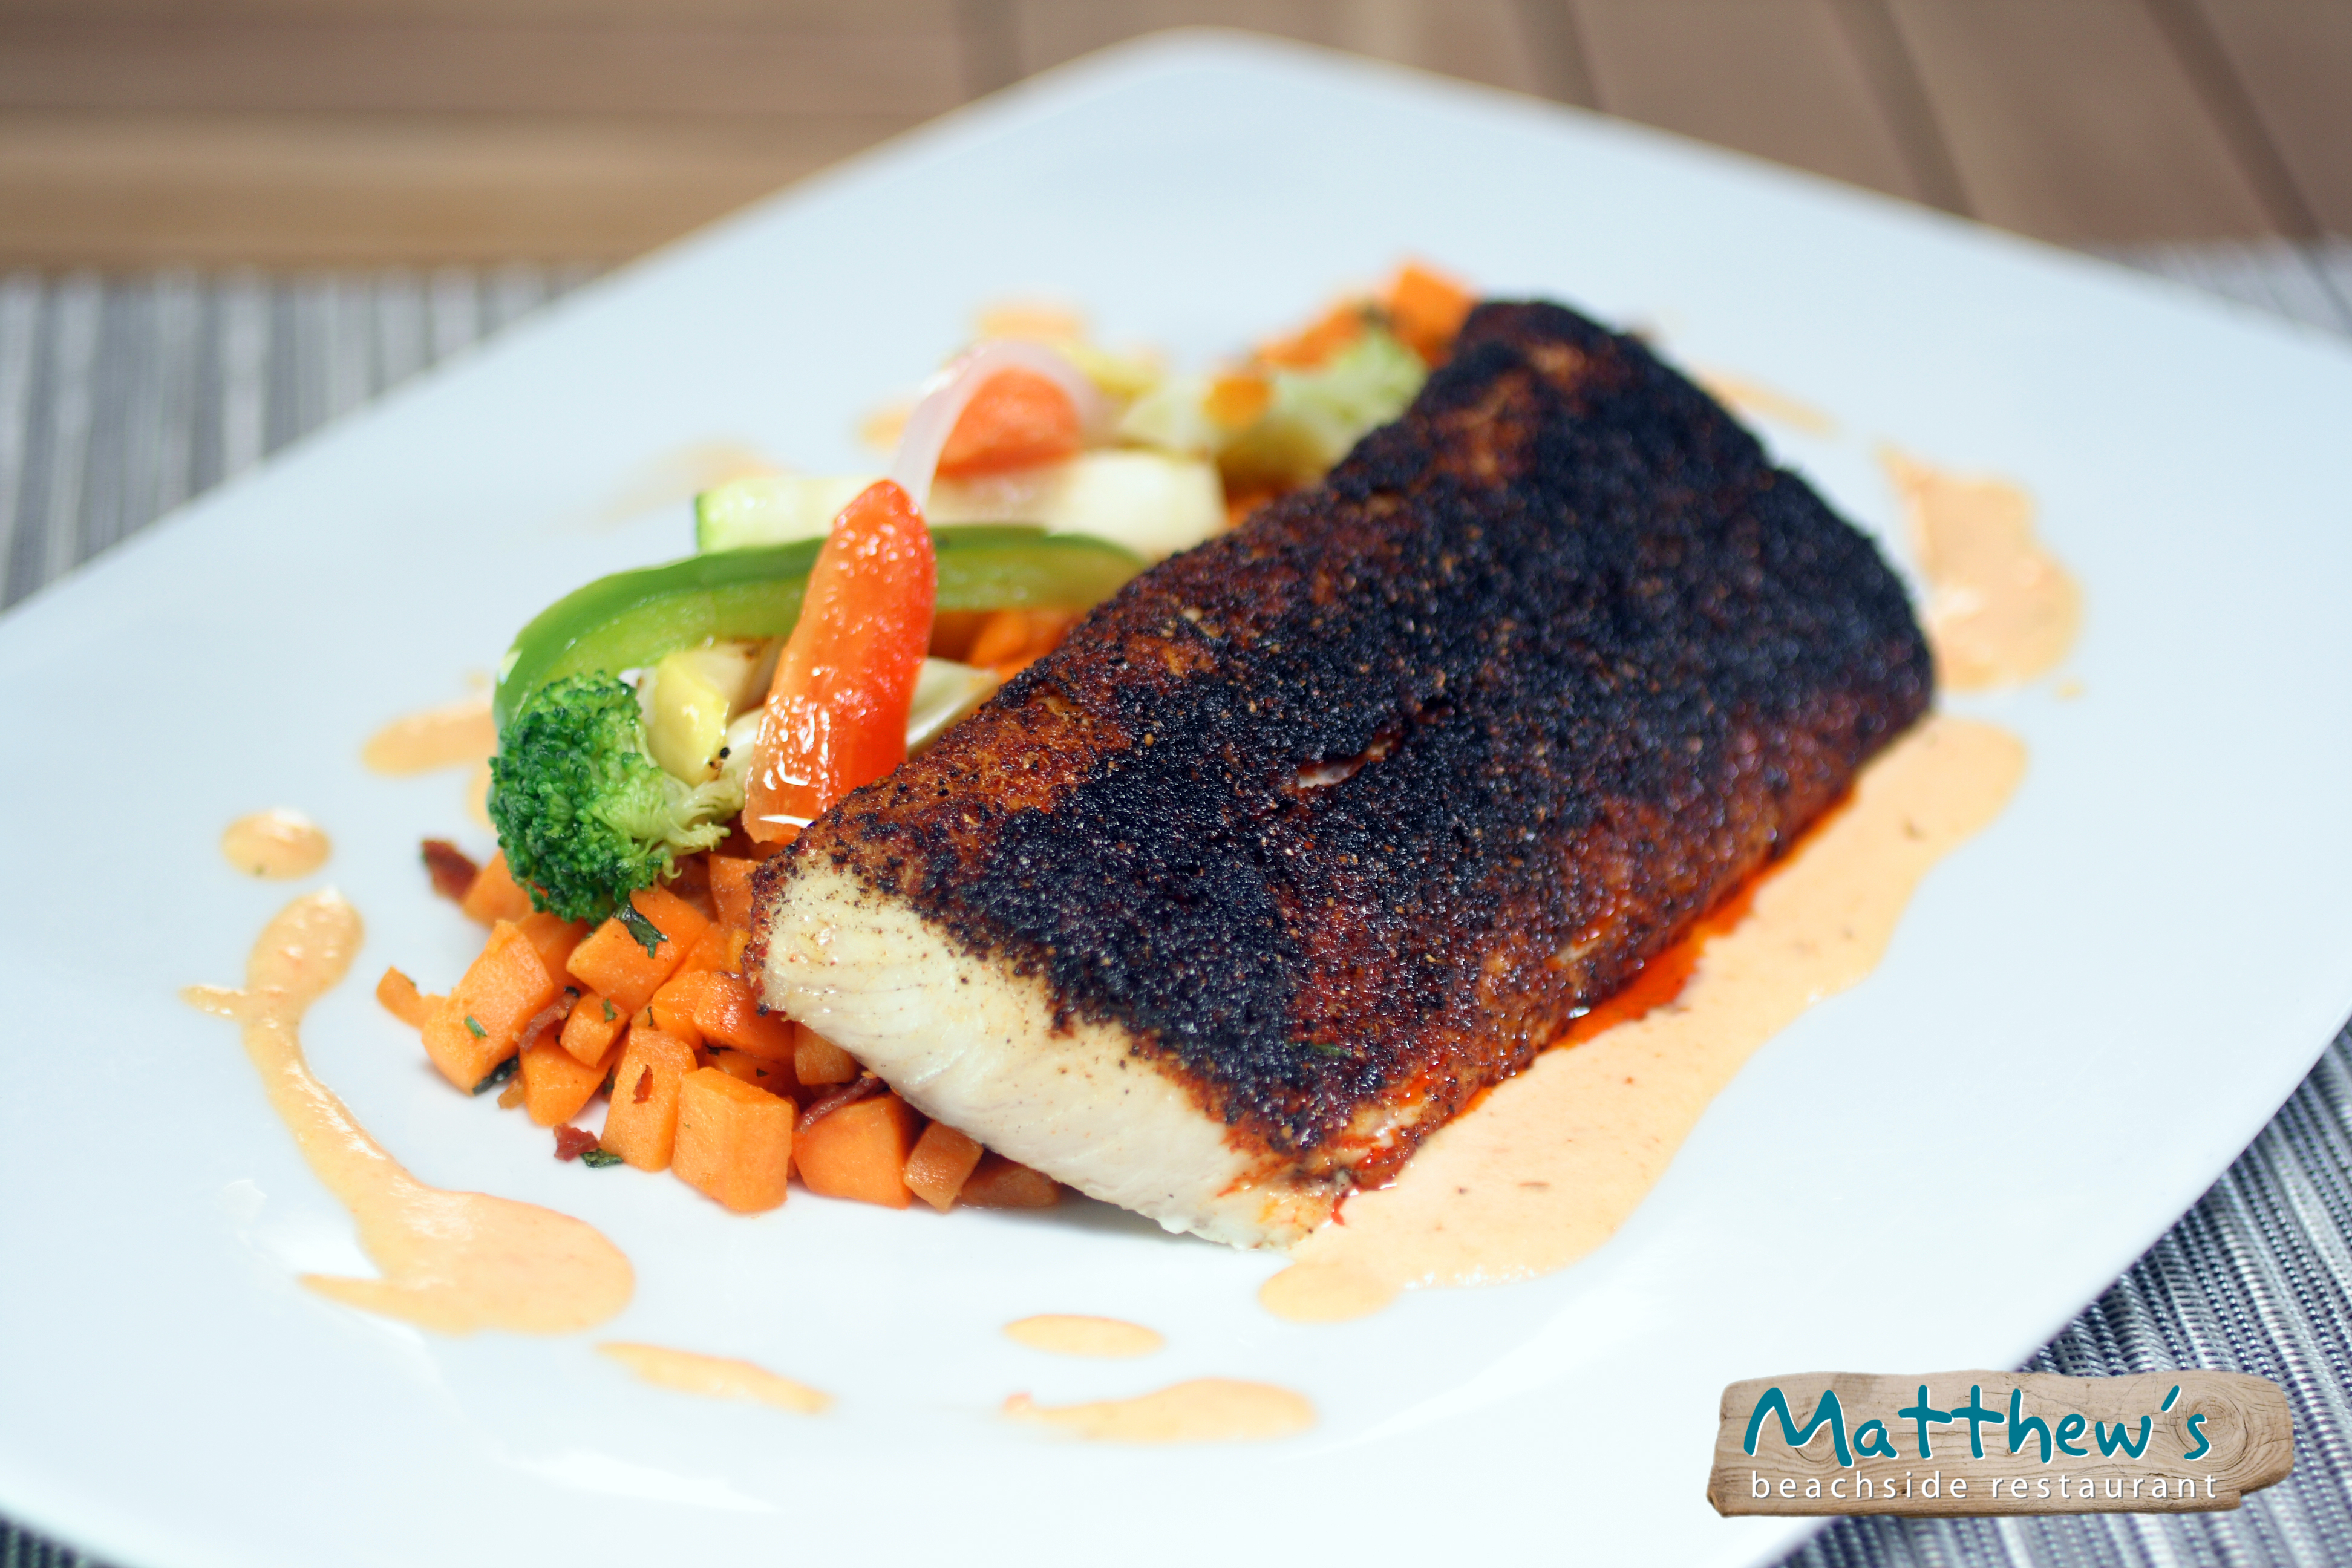 Seared corvina fish with a side of veggies